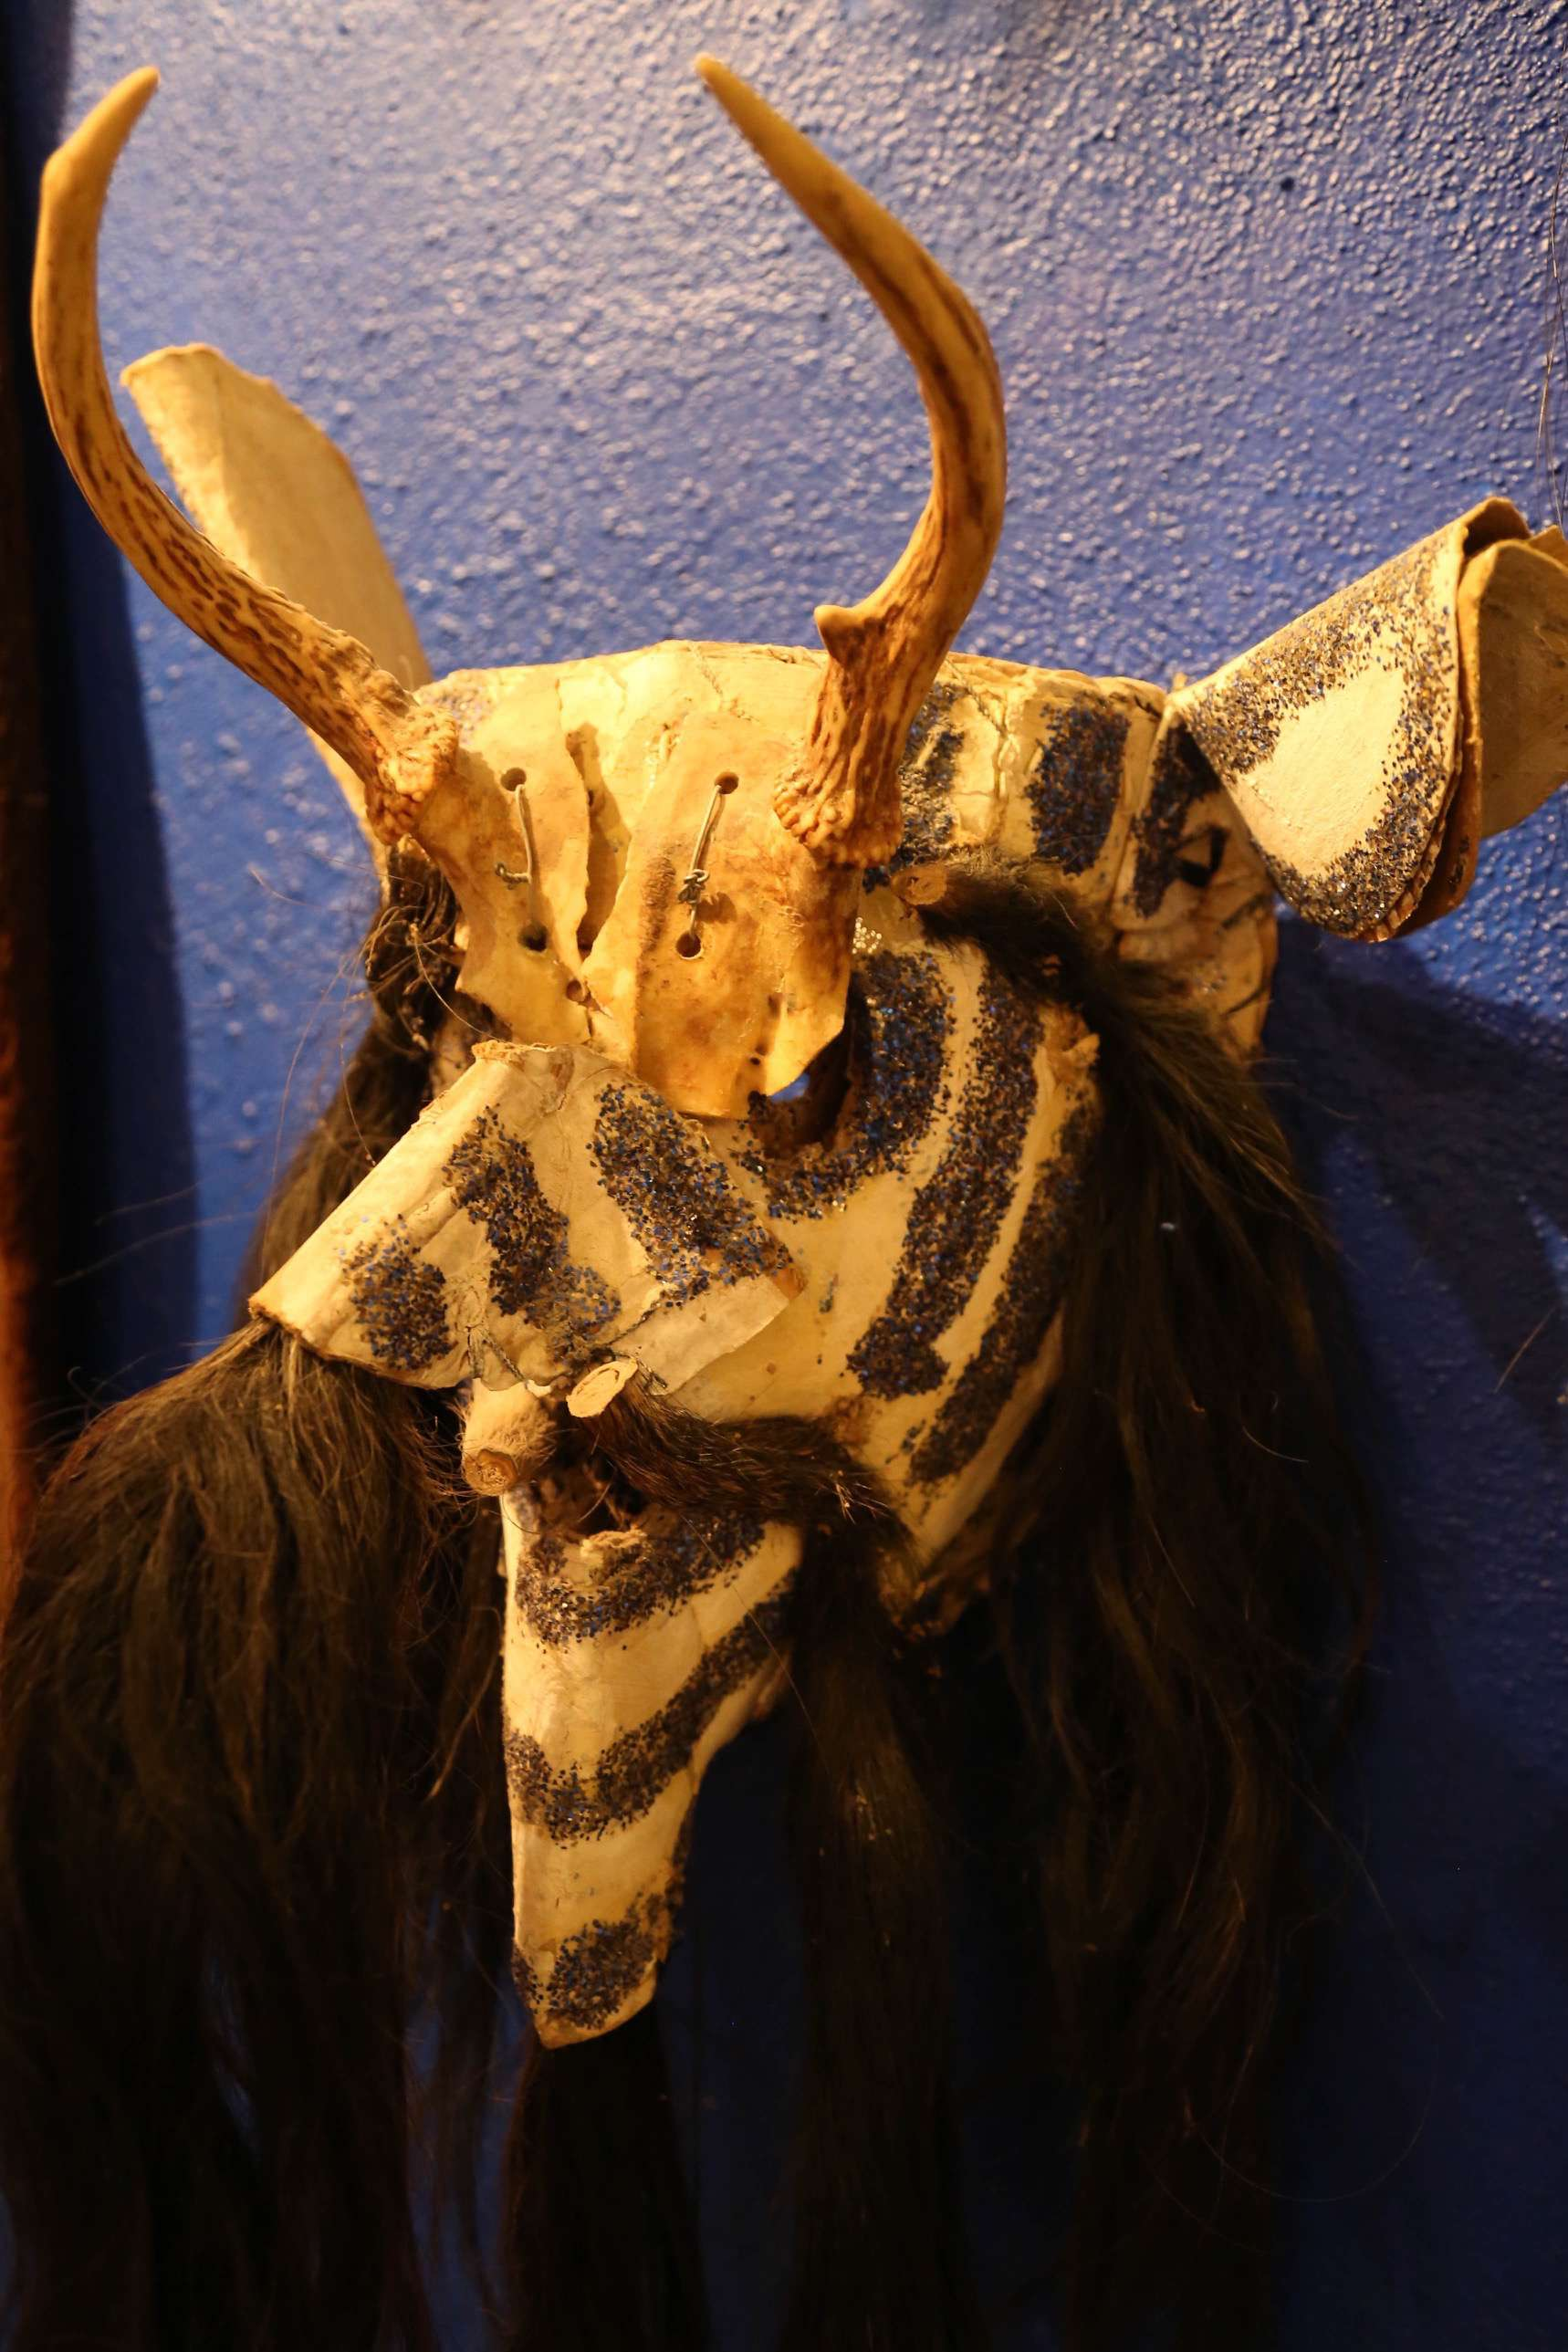 While most masks are made of wood, some, like this one, are made of leather or other materials.